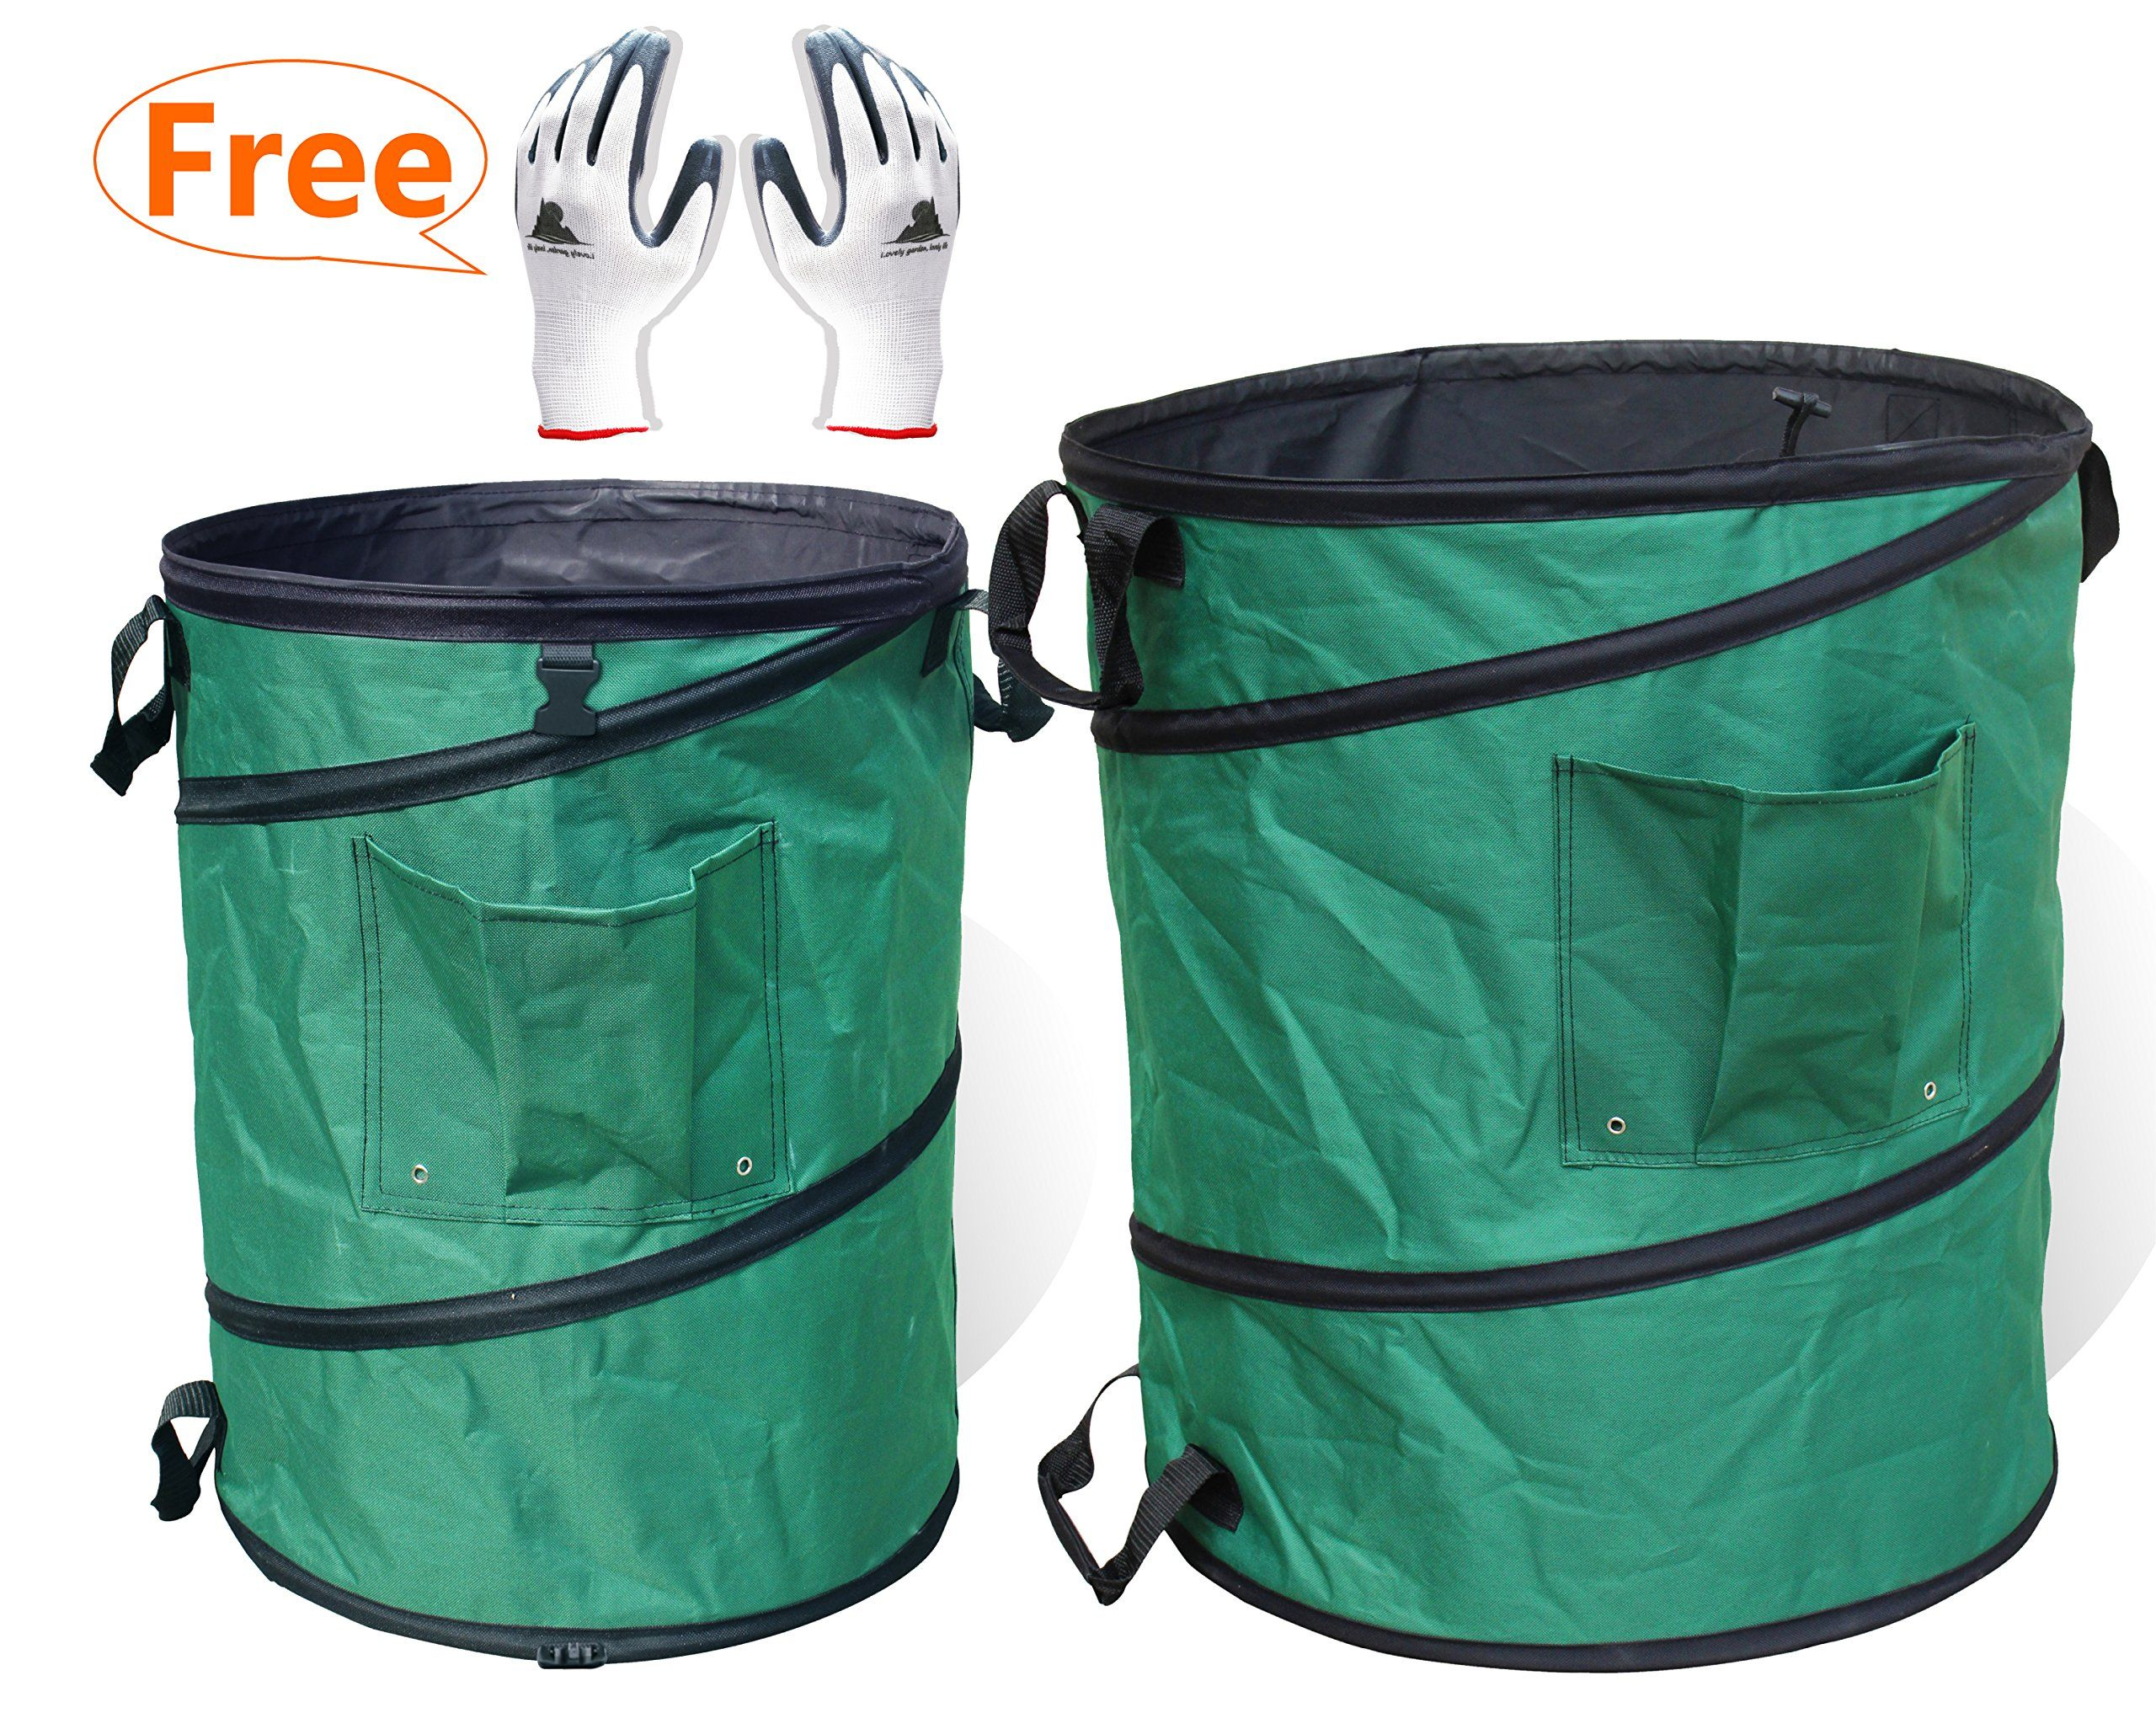 Gardzen 45 Gallon Pop Up Garden Bag With Extra 30 Come Gloves Heavy Duty Reusable Gardening Yard Lawn And Leaf Waste Trash Tool